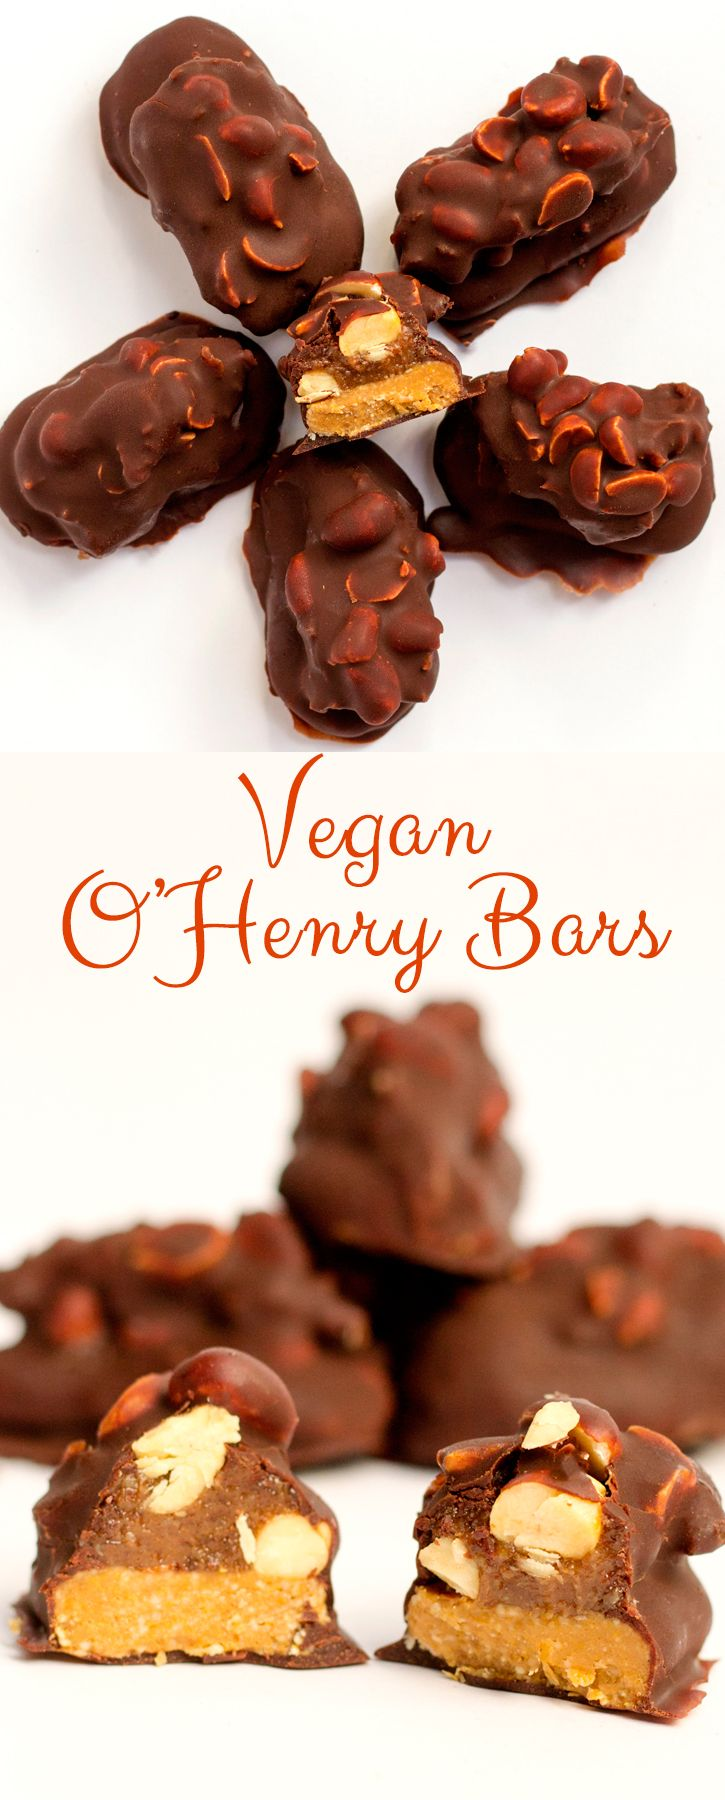 Vegan O'Henry bars, made with date caramel, peanut butter, cashews and homemade chocolate. A guilt free dessert #Vegan #glutenfree.